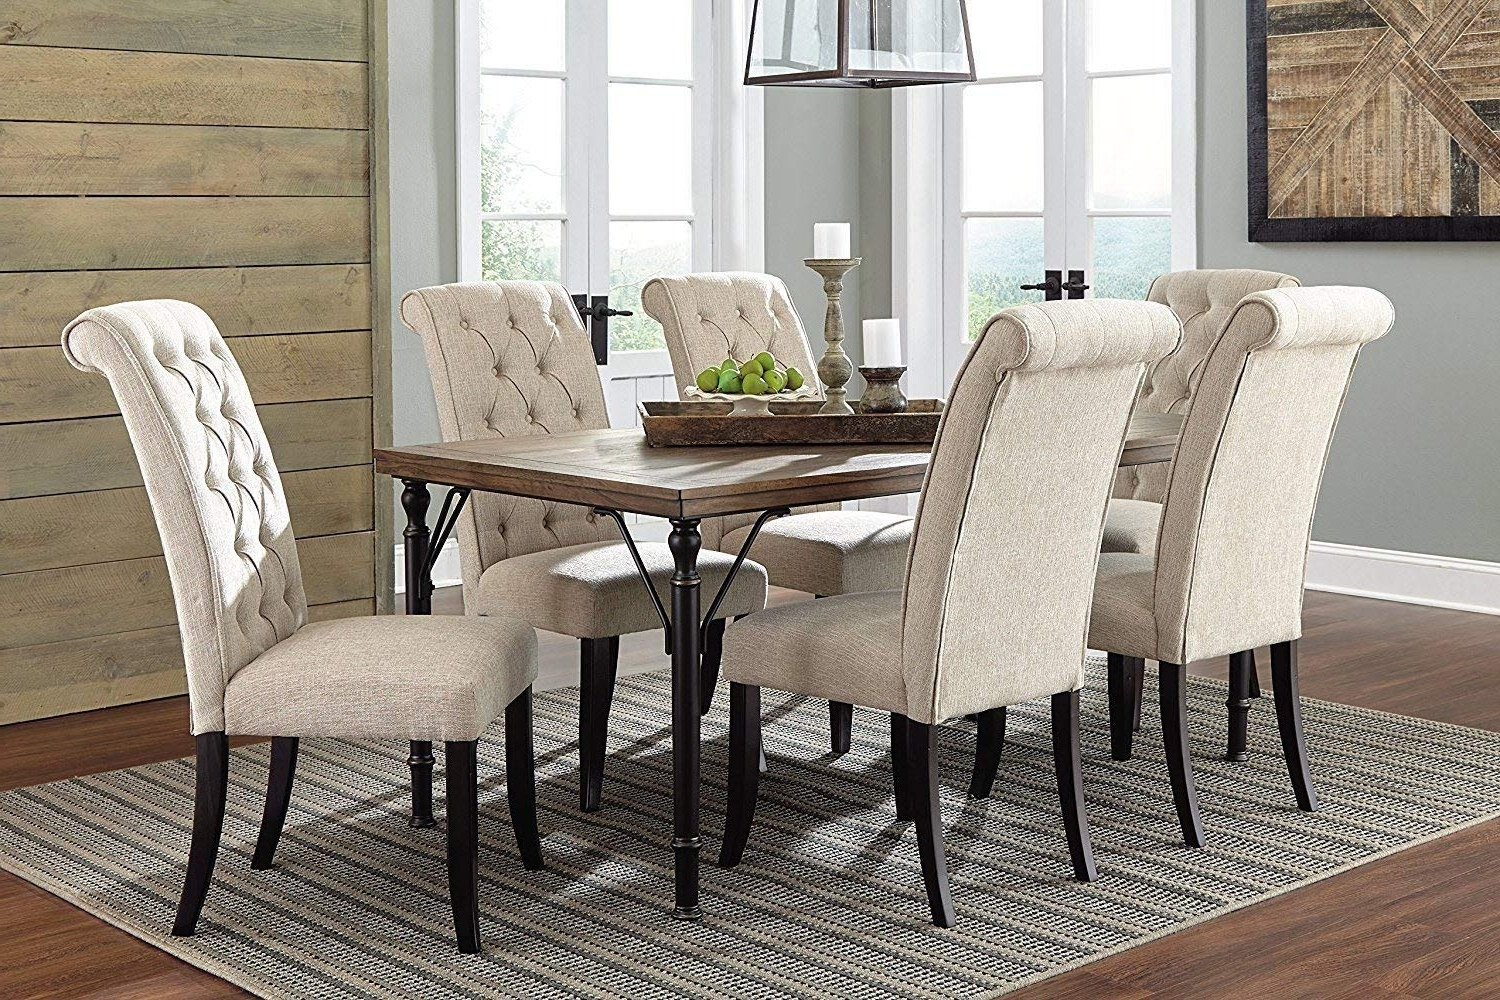 Preferred Market 6 Piece Dining Sets With Host And Side Chairs With Amazon – Ashley Furniture Signature Design – Tripton Dining Room (View 6 of 25)